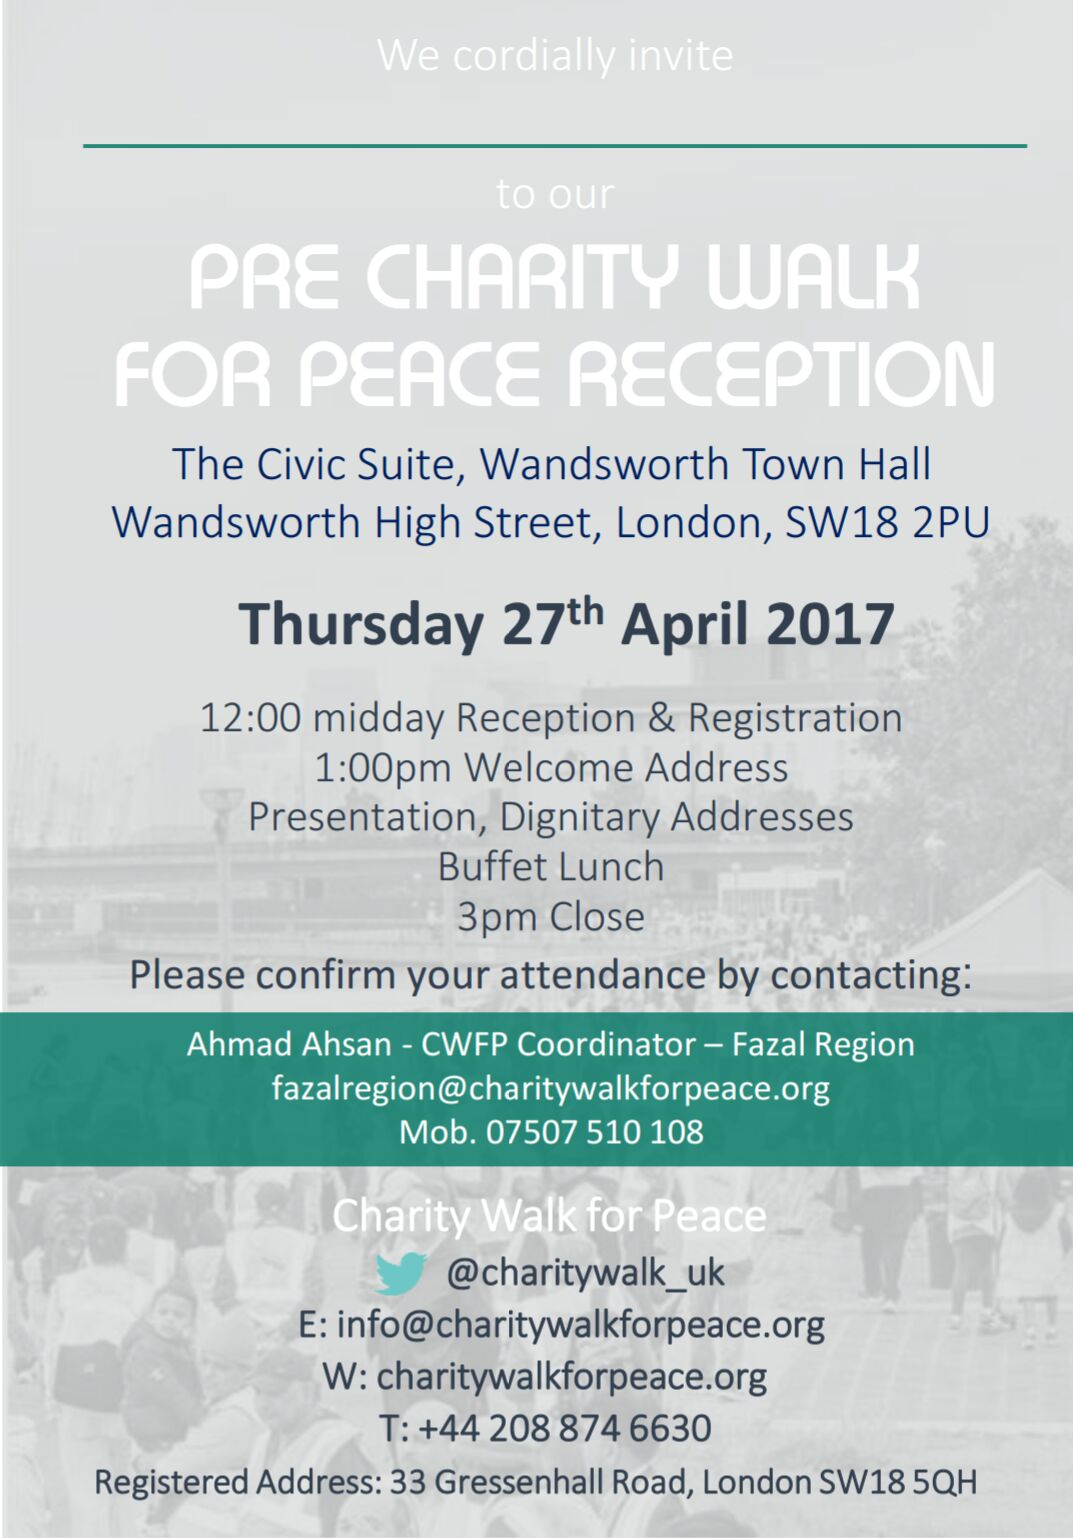 Pre-Charity Walk Reception